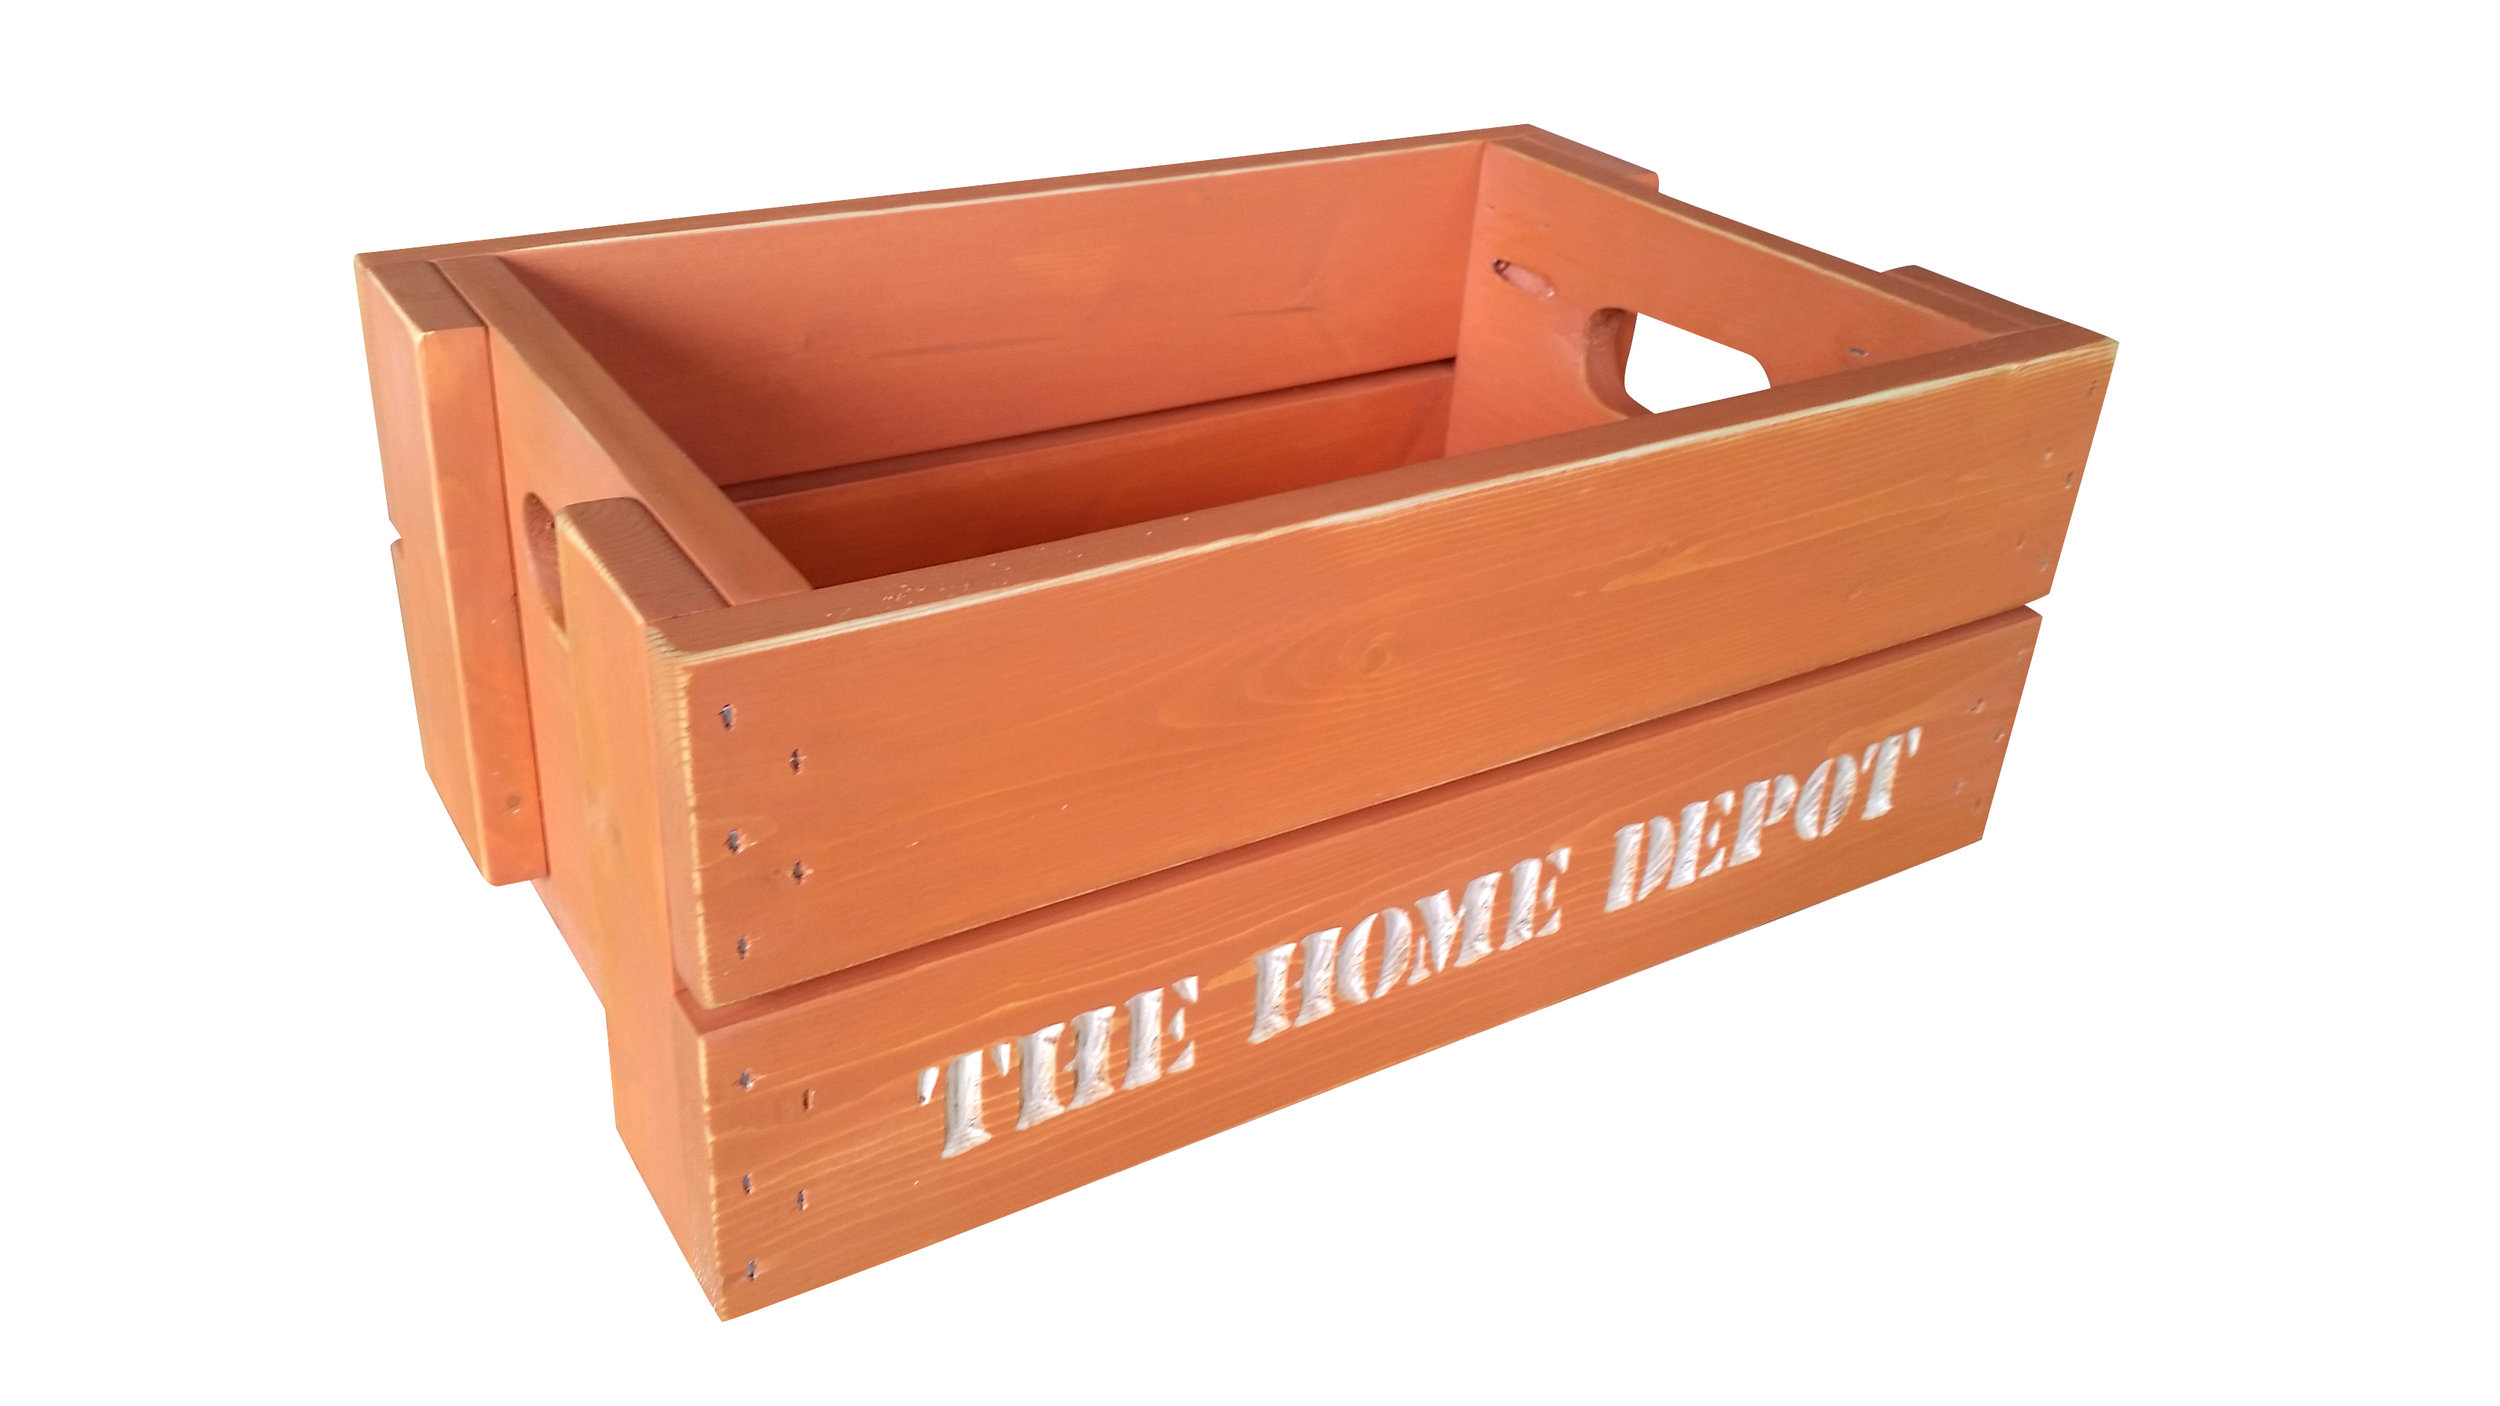 custom crates, asheville crate co.,the home depot, asheville crate company